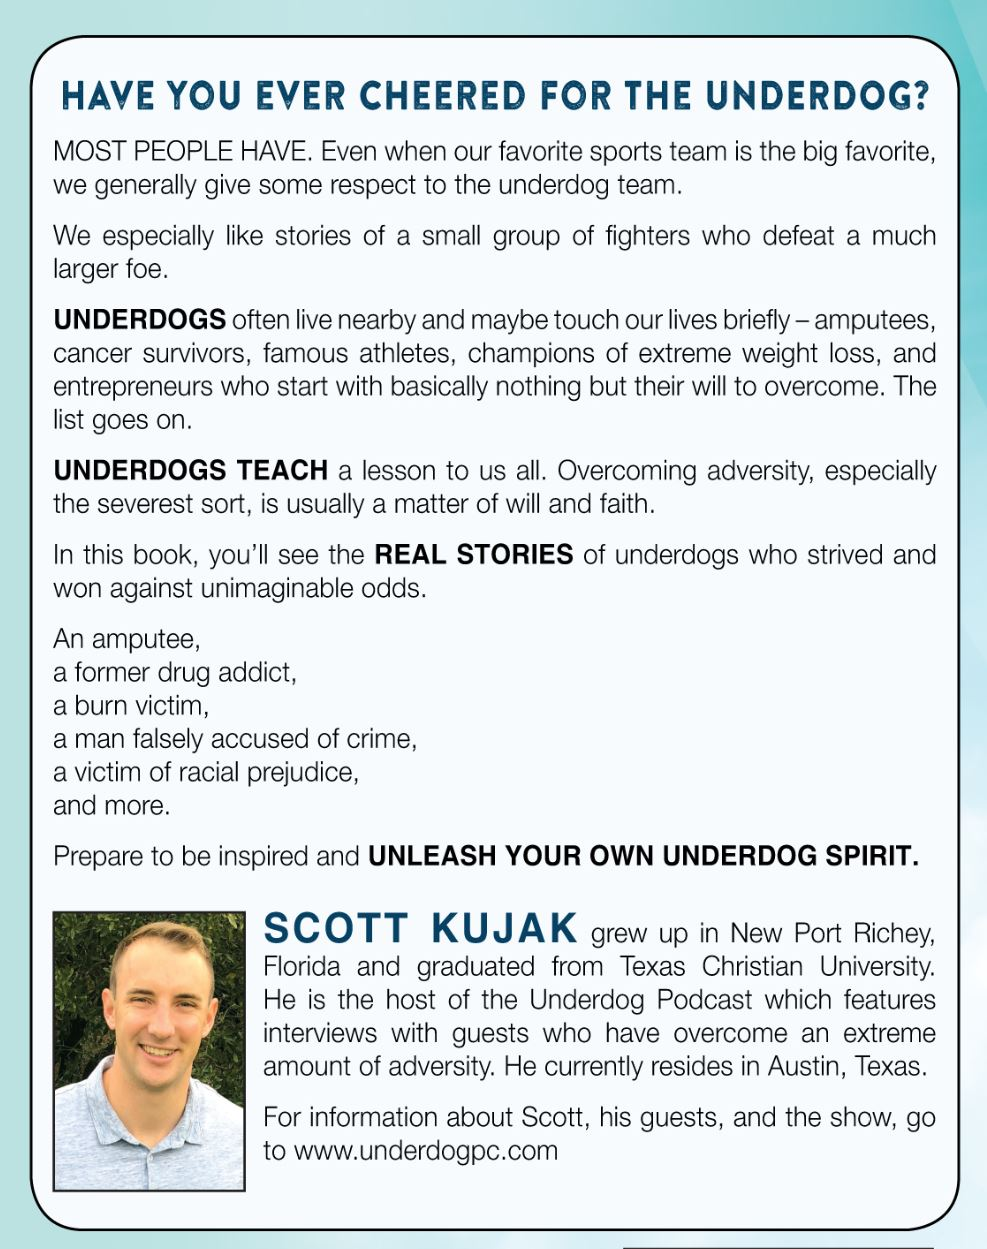 Underdog Book Back Cover 2.JPG